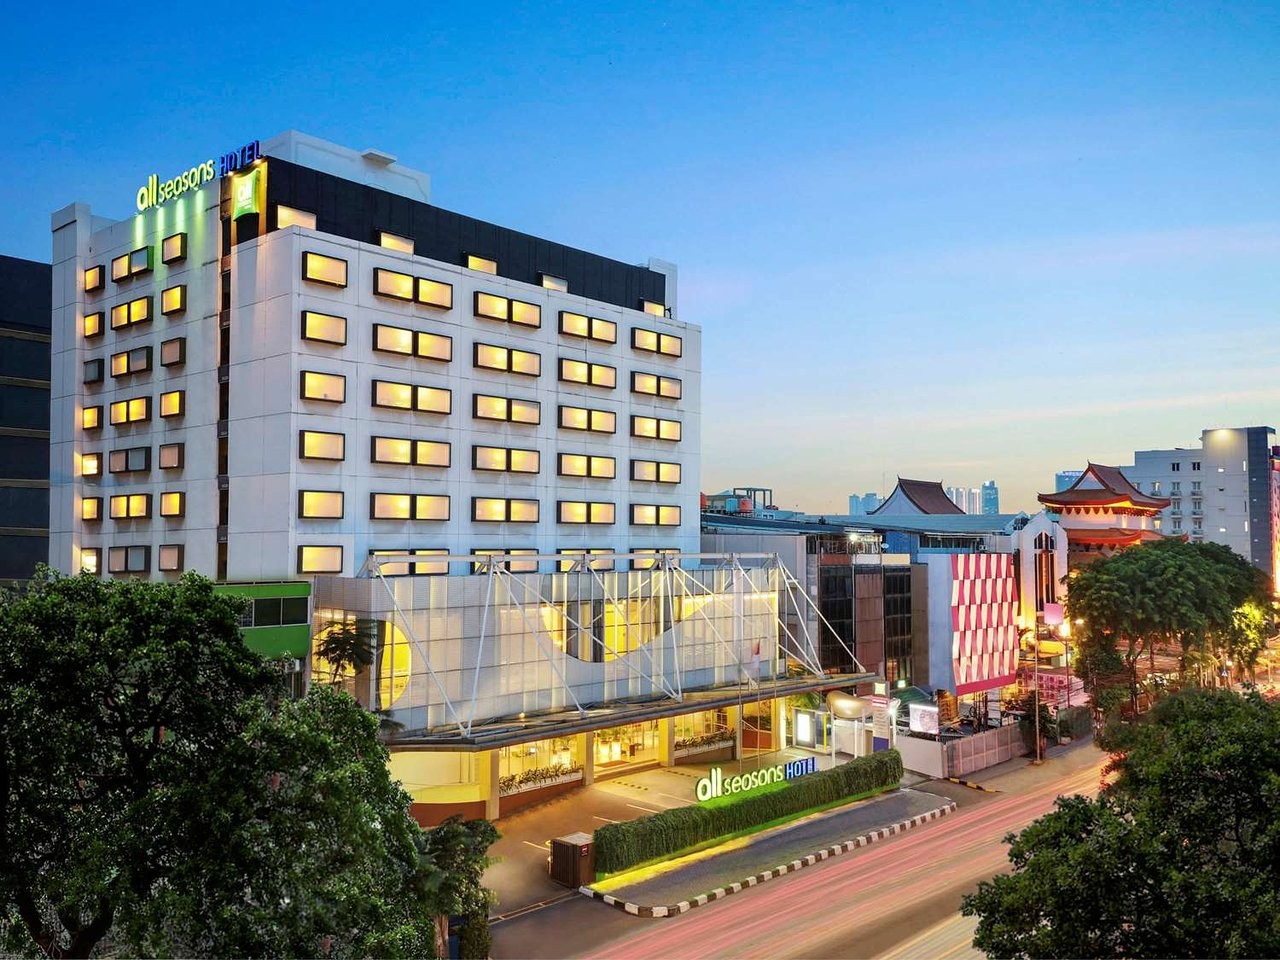 The 10 Closest Hotels To Gajah Mada Plaza Jakarta